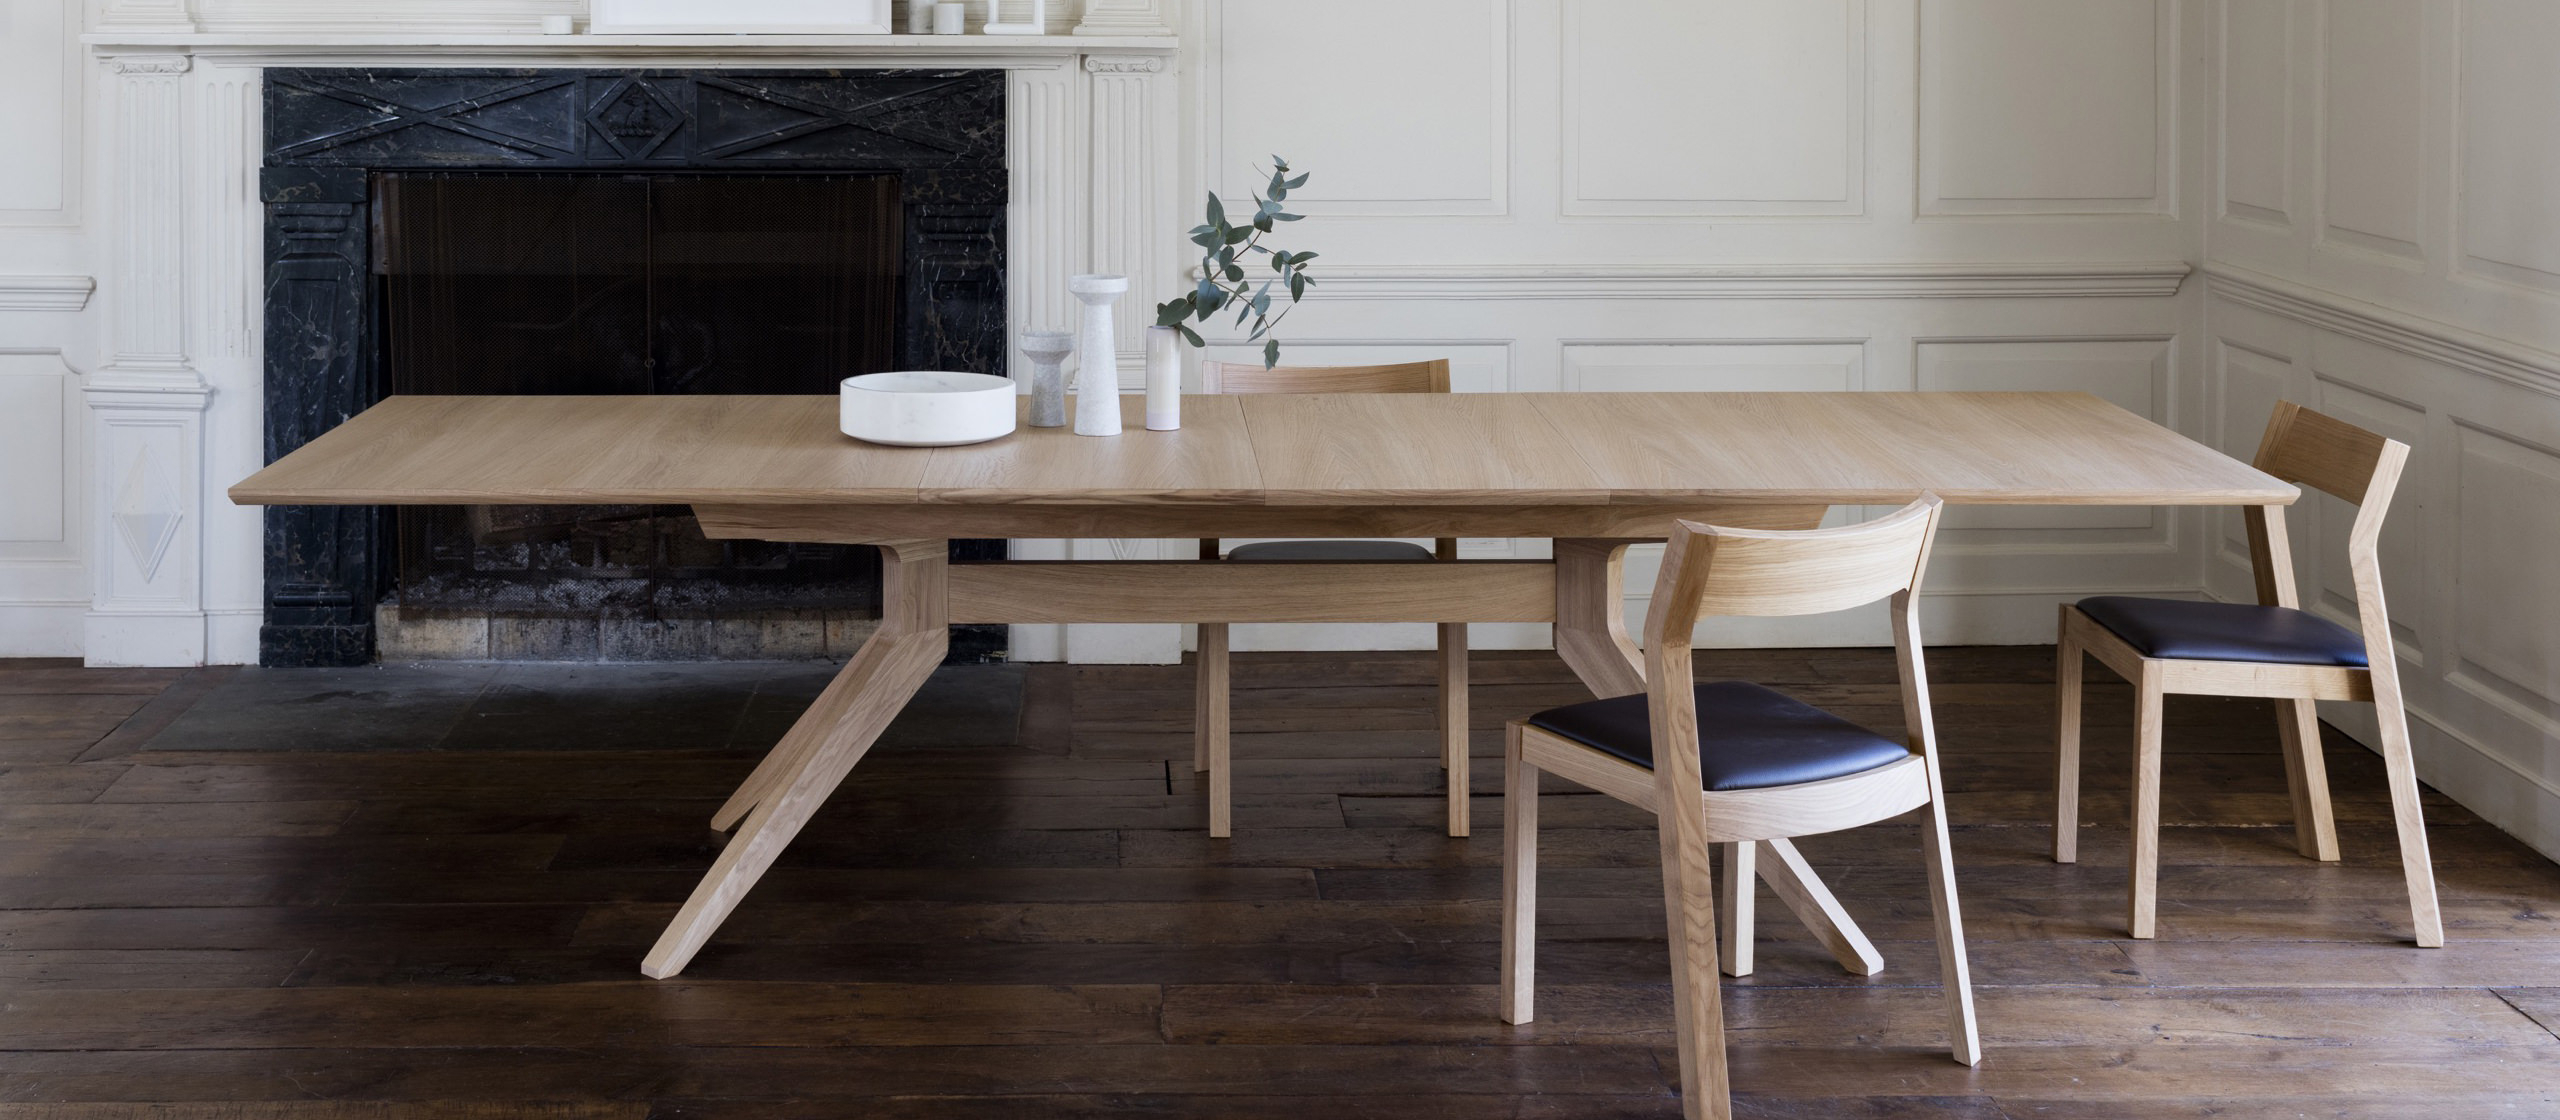 Matthew Hilton | Furniture Designer | Case Furniture In 2018 Mateo Extending Dining Tables (View 11 of 25)